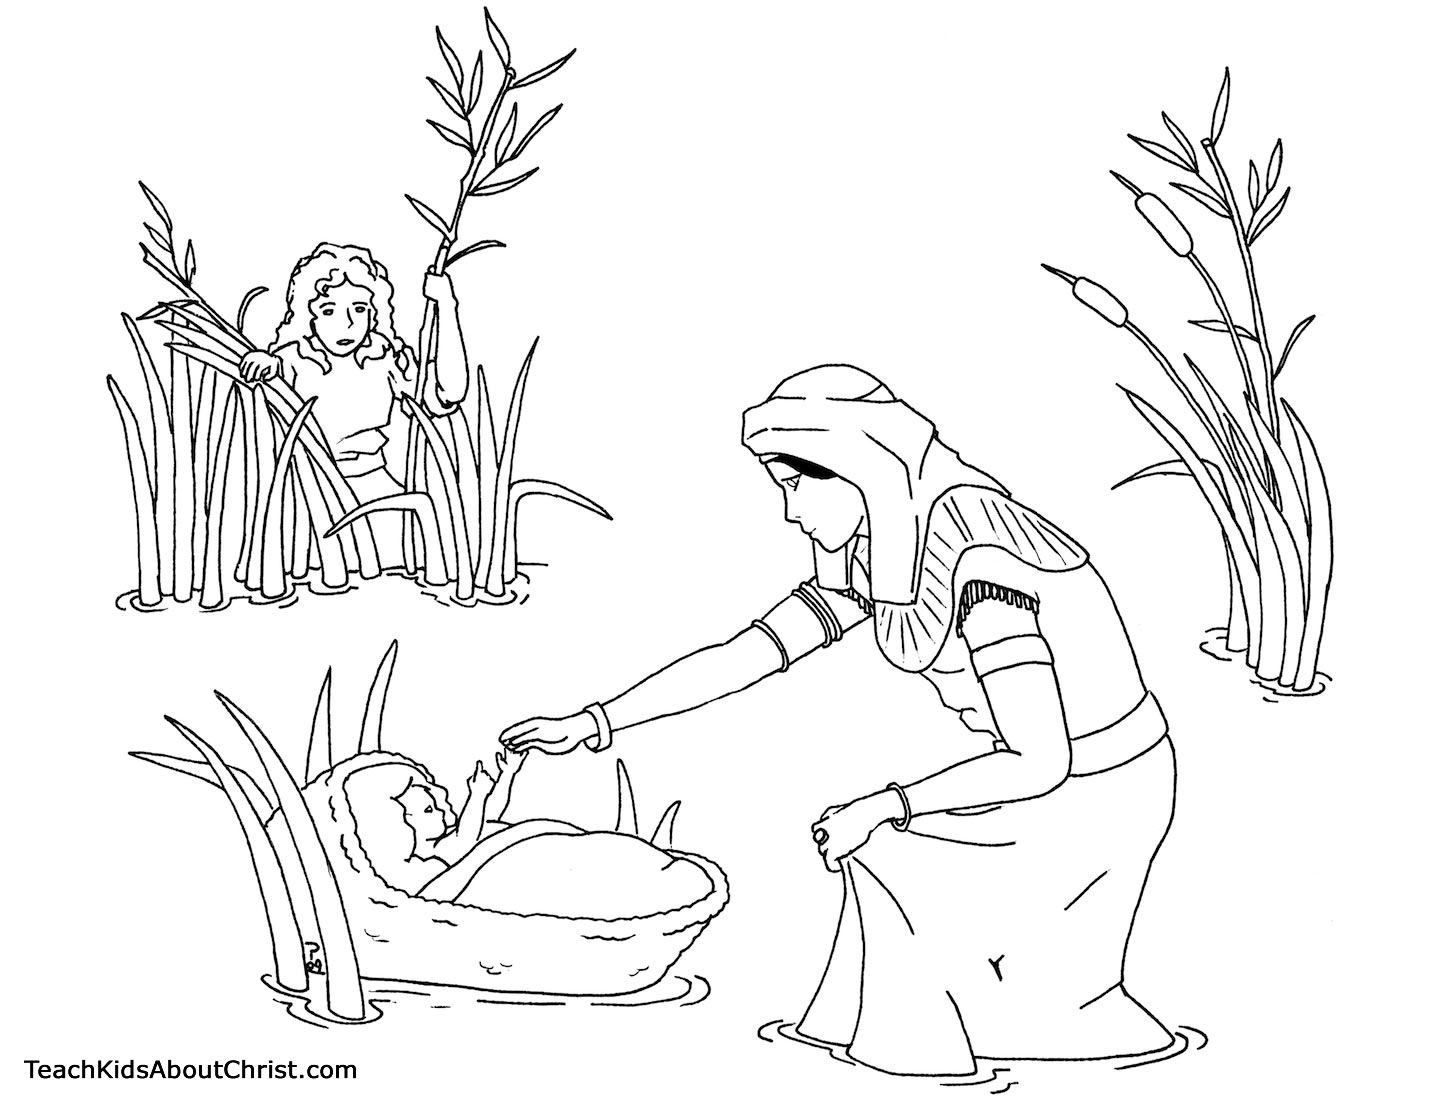 Childrens bible stories and coloring pages - Coloring Page Of Baby Moses Basket On The Picture And Then Print It You